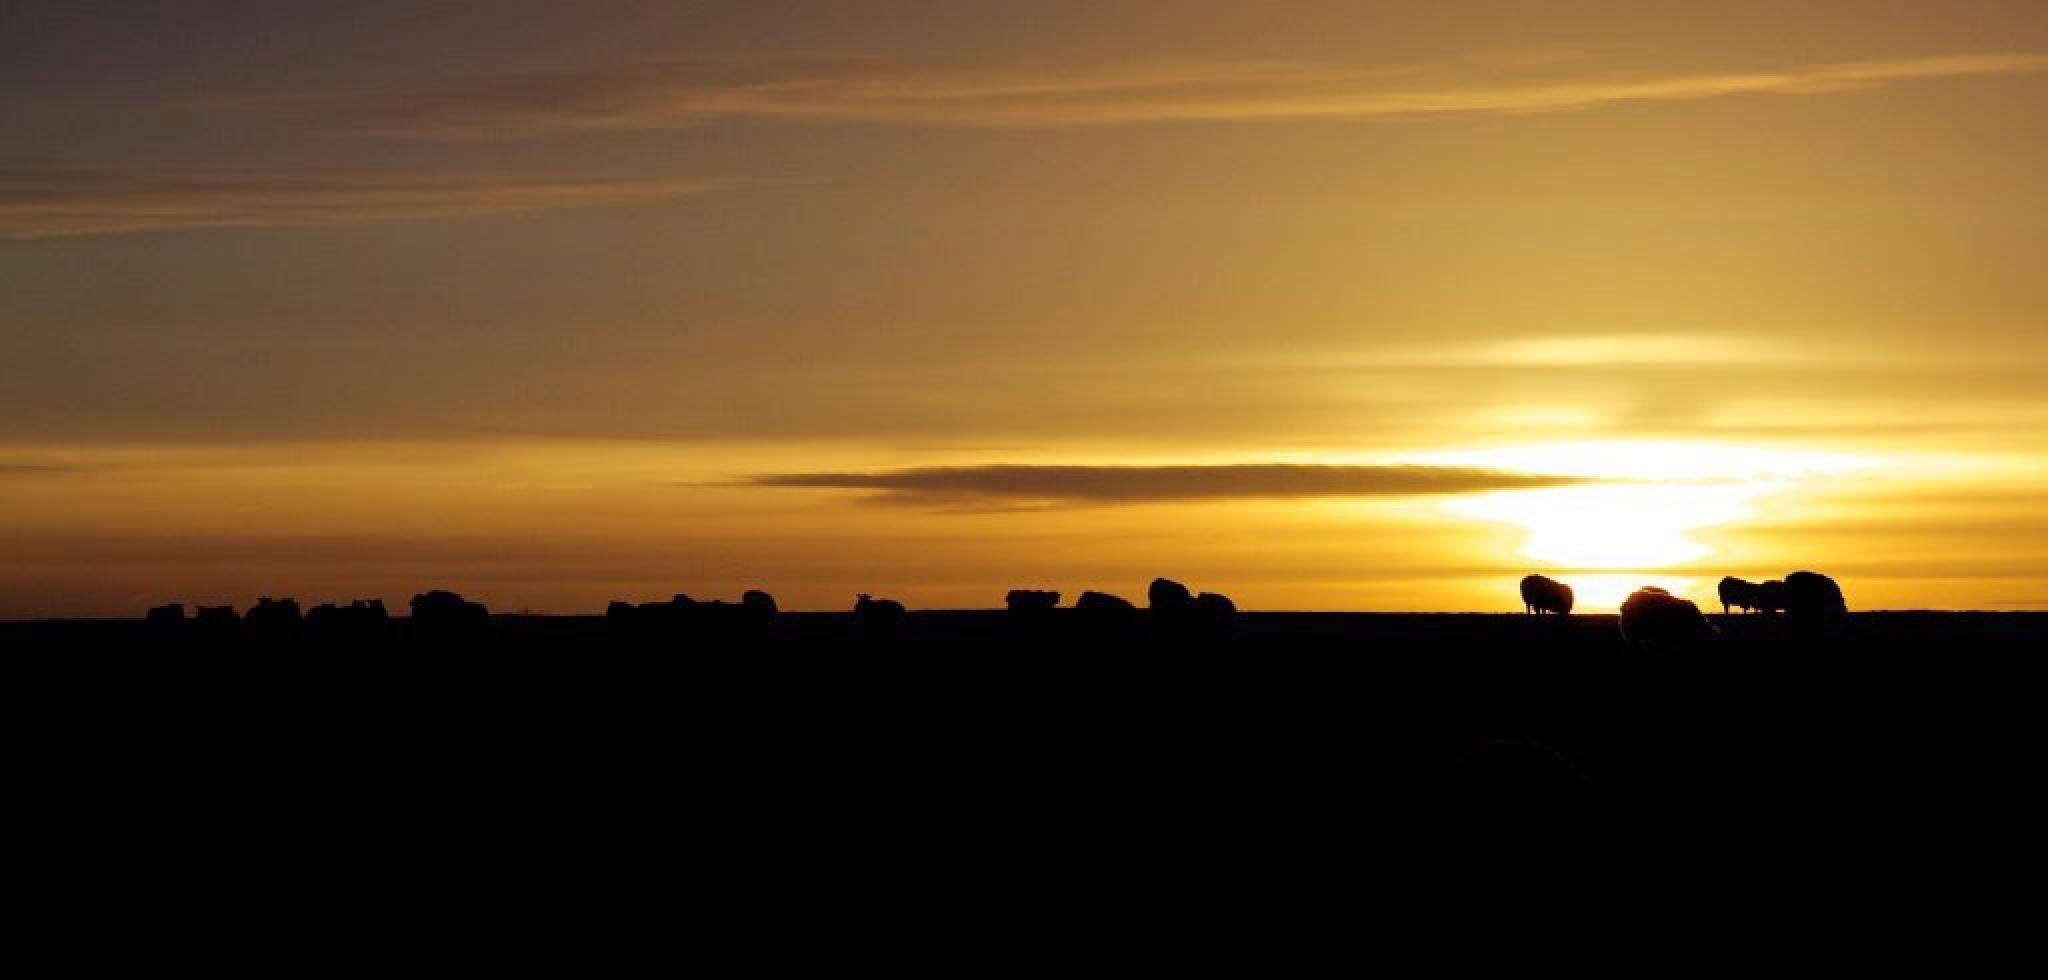 Sheep in silhouette by Steve Blundell